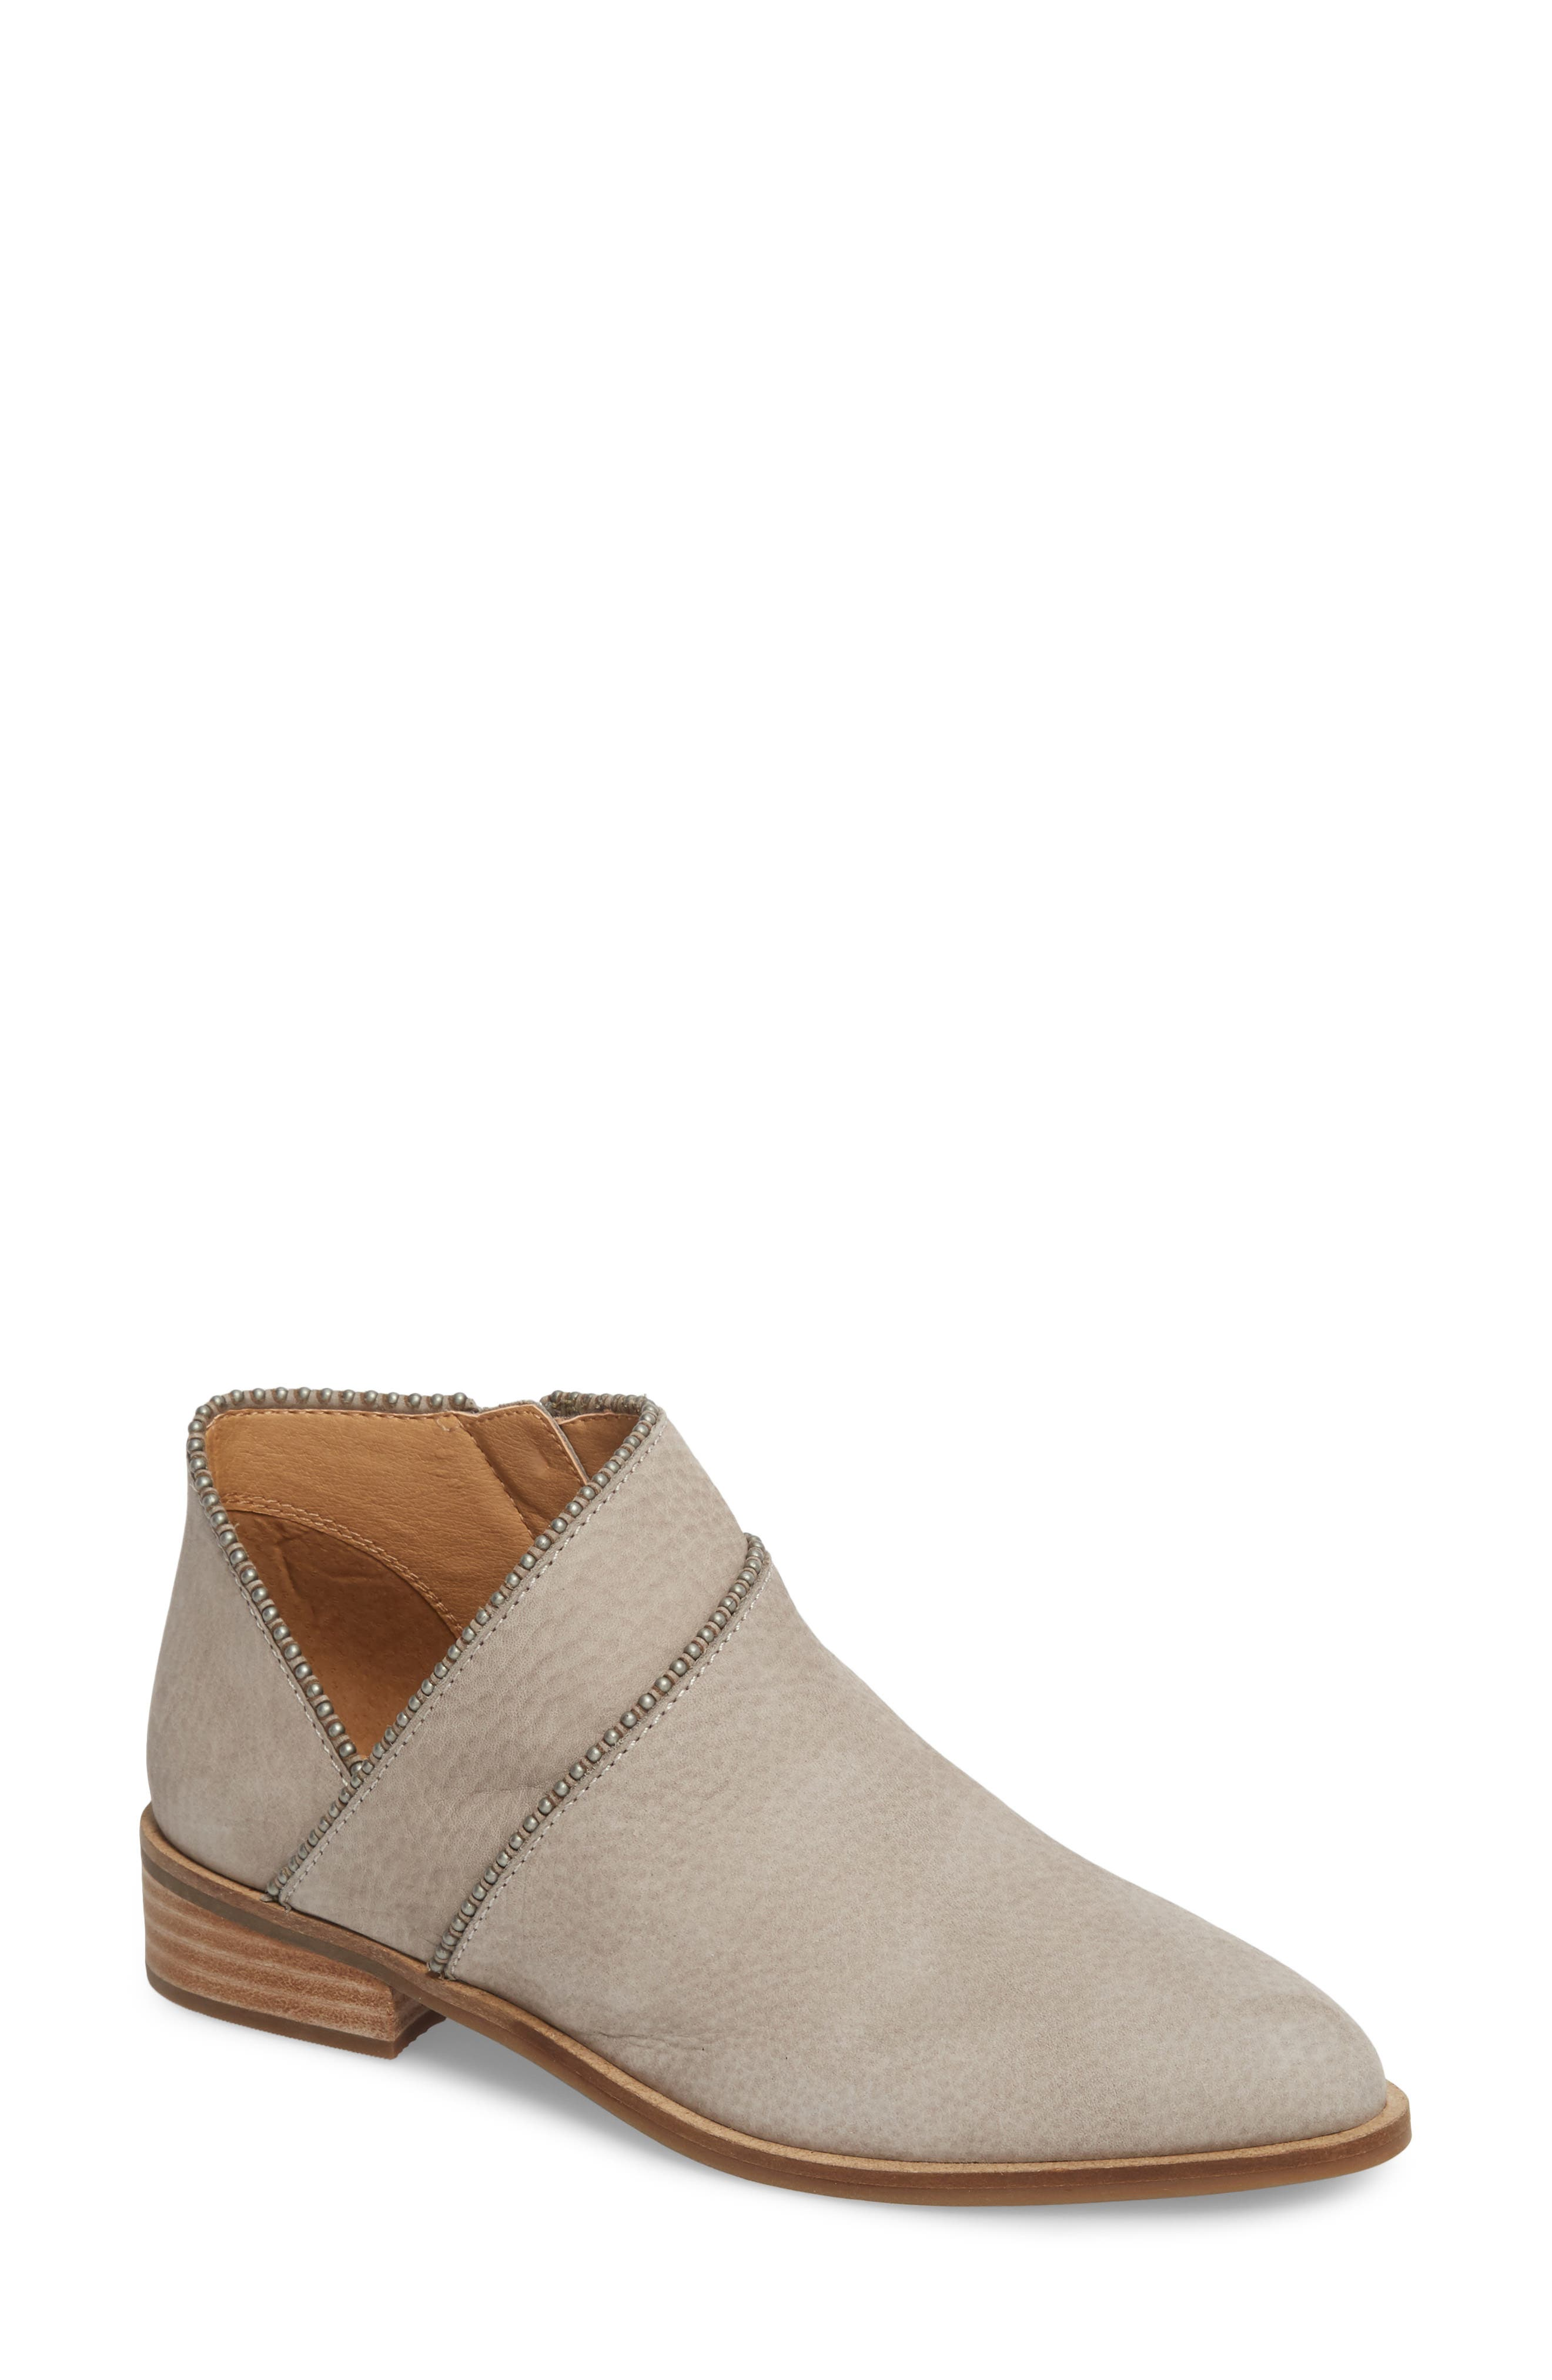 Lucky Brand Perrma Bootie- Grey